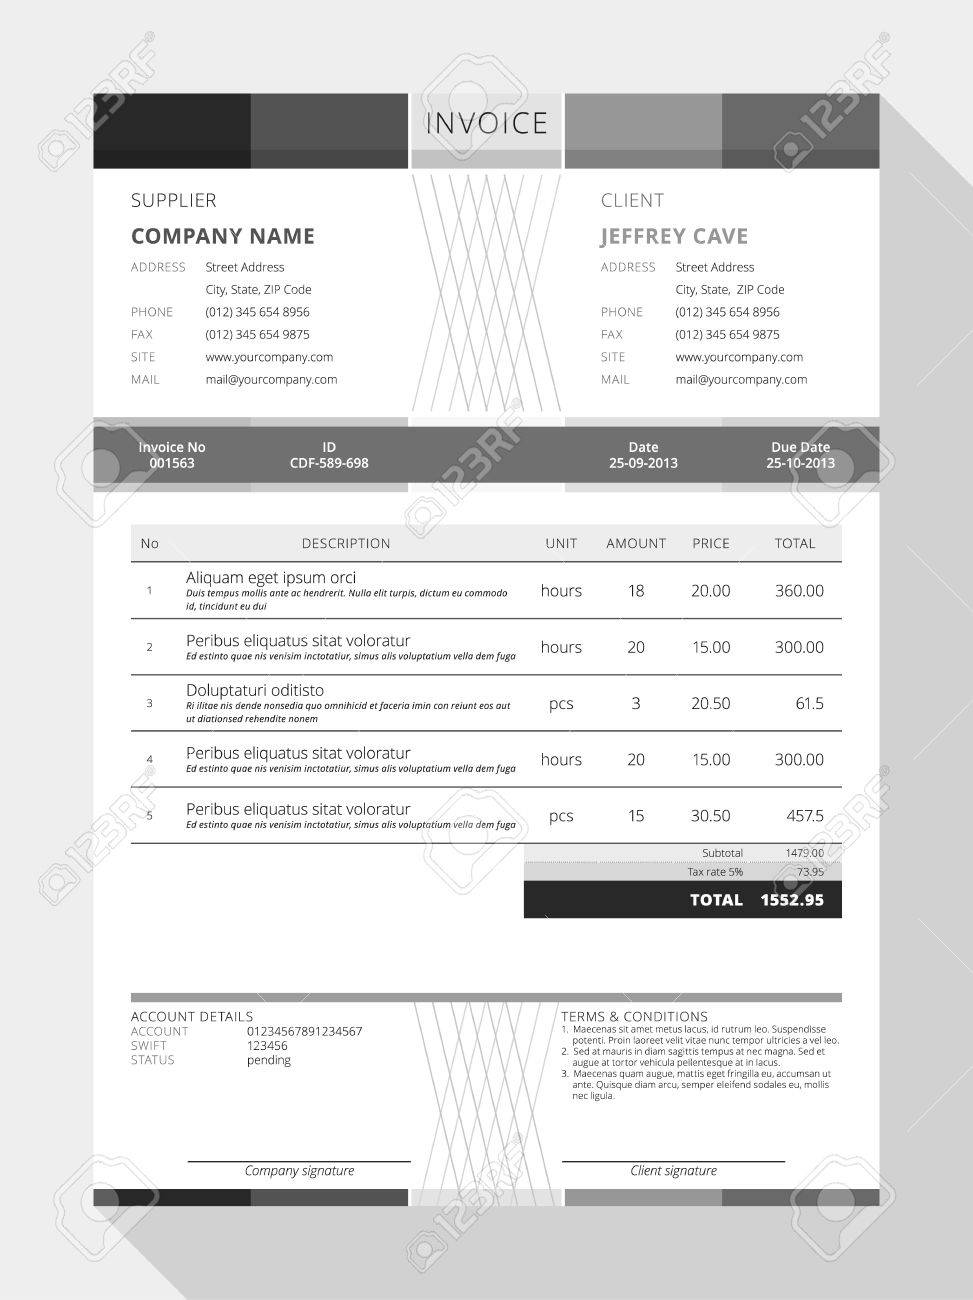 Aldiablosus  Prepossessing Design An Invoice  Professional Graphic Design Invoice  With Marvelous Vector Customizable Invoice Form Template Design Vector   Design An Invoice With Lovely Cab Receipt Template Also Flyte Tyme Receipts In Addition Walmart Receipt Savings And Receipt Of Deposit As Well As Fillable Receipt Template Additionally How To Print Receipts From Happytomco With Aldiablosus  Marvelous Design An Invoice  Professional Graphic Design Invoice  With Lovely Vector Customizable Invoice Form Template Design Vector   Design An Invoice And Prepossessing Cab Receipt Template Also Flyte Tyme Receipts In Addition Walmart Receipt Savings From Happytomco